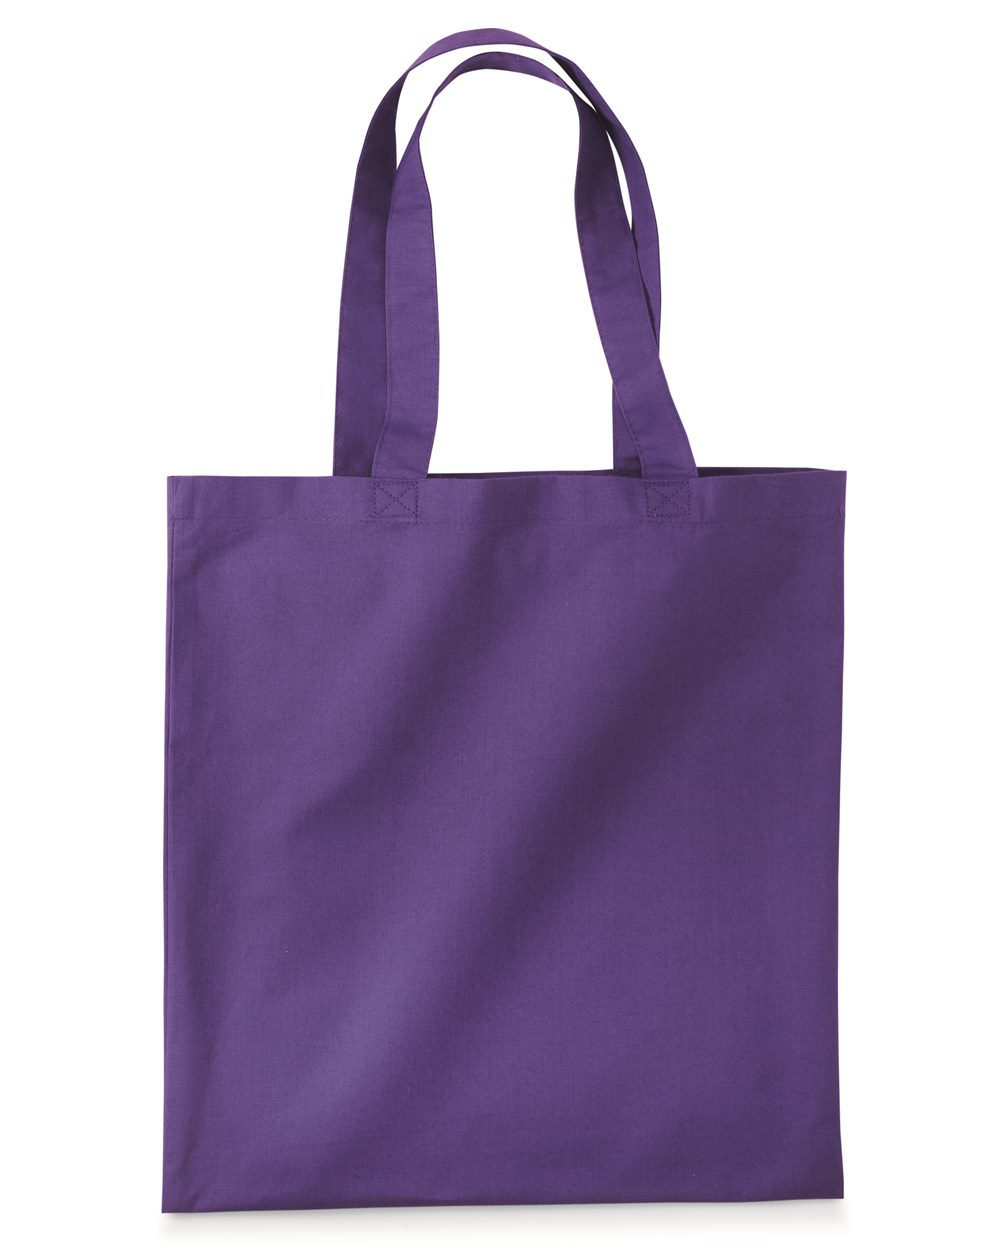 Valubag QTB - Economical Tote Bag